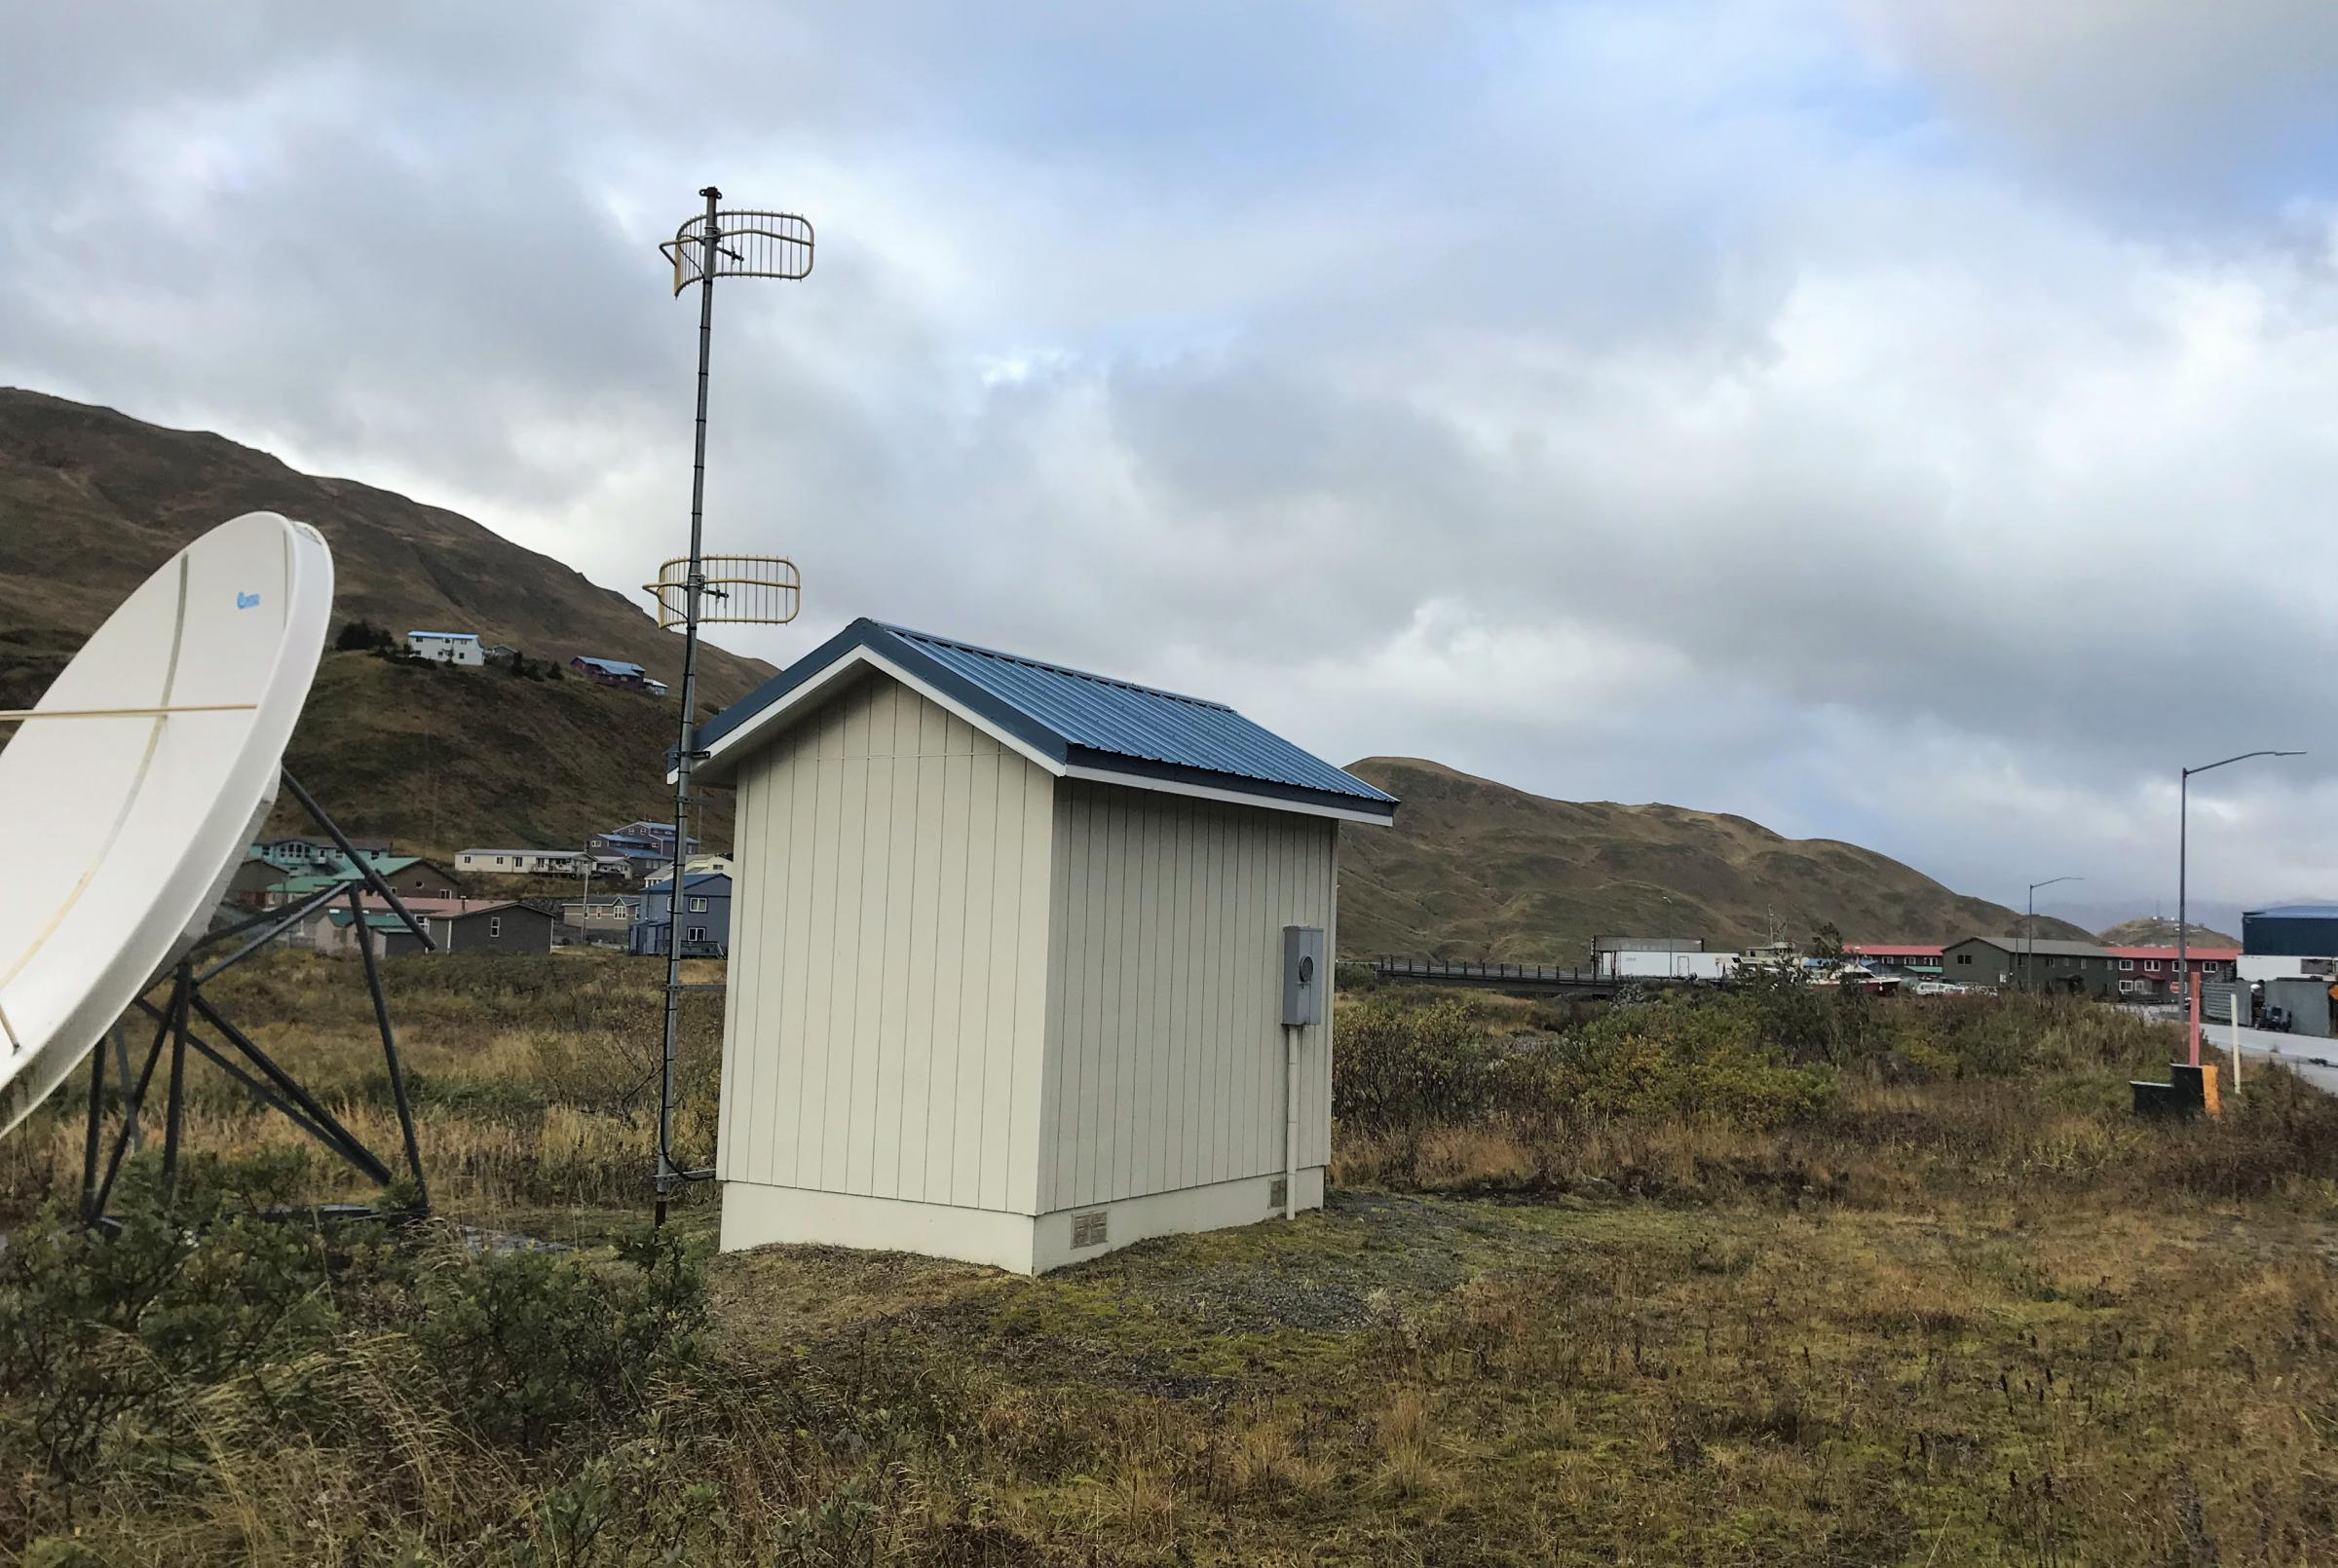 Two Commercial Radio Stations Join Unalaska's Airwaves | KUCB